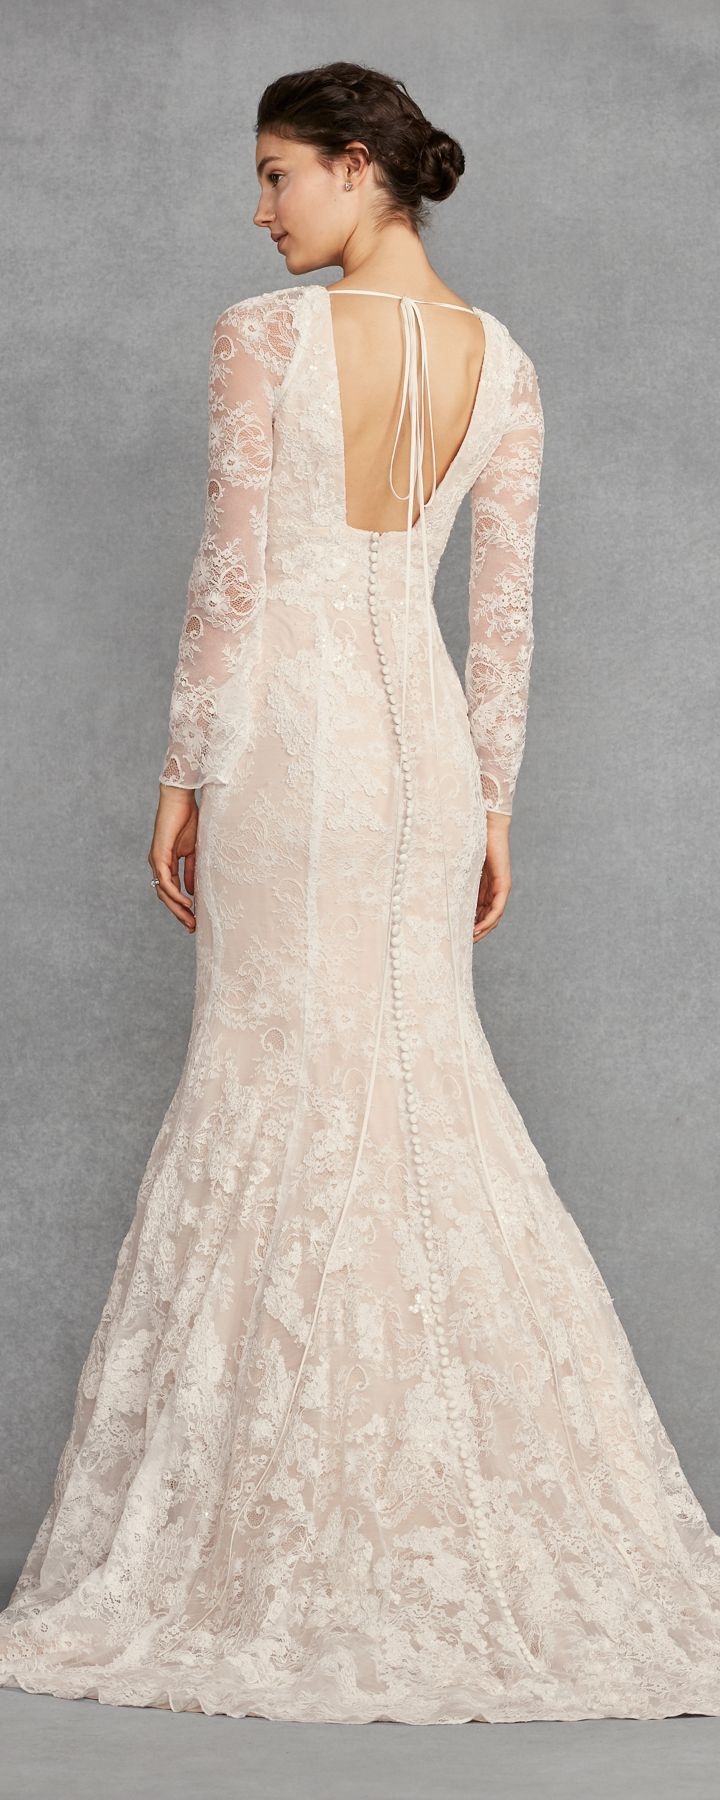 White by Vera Wang Bell Sleeve Lace Wedding Dress #weddings #dresses ...